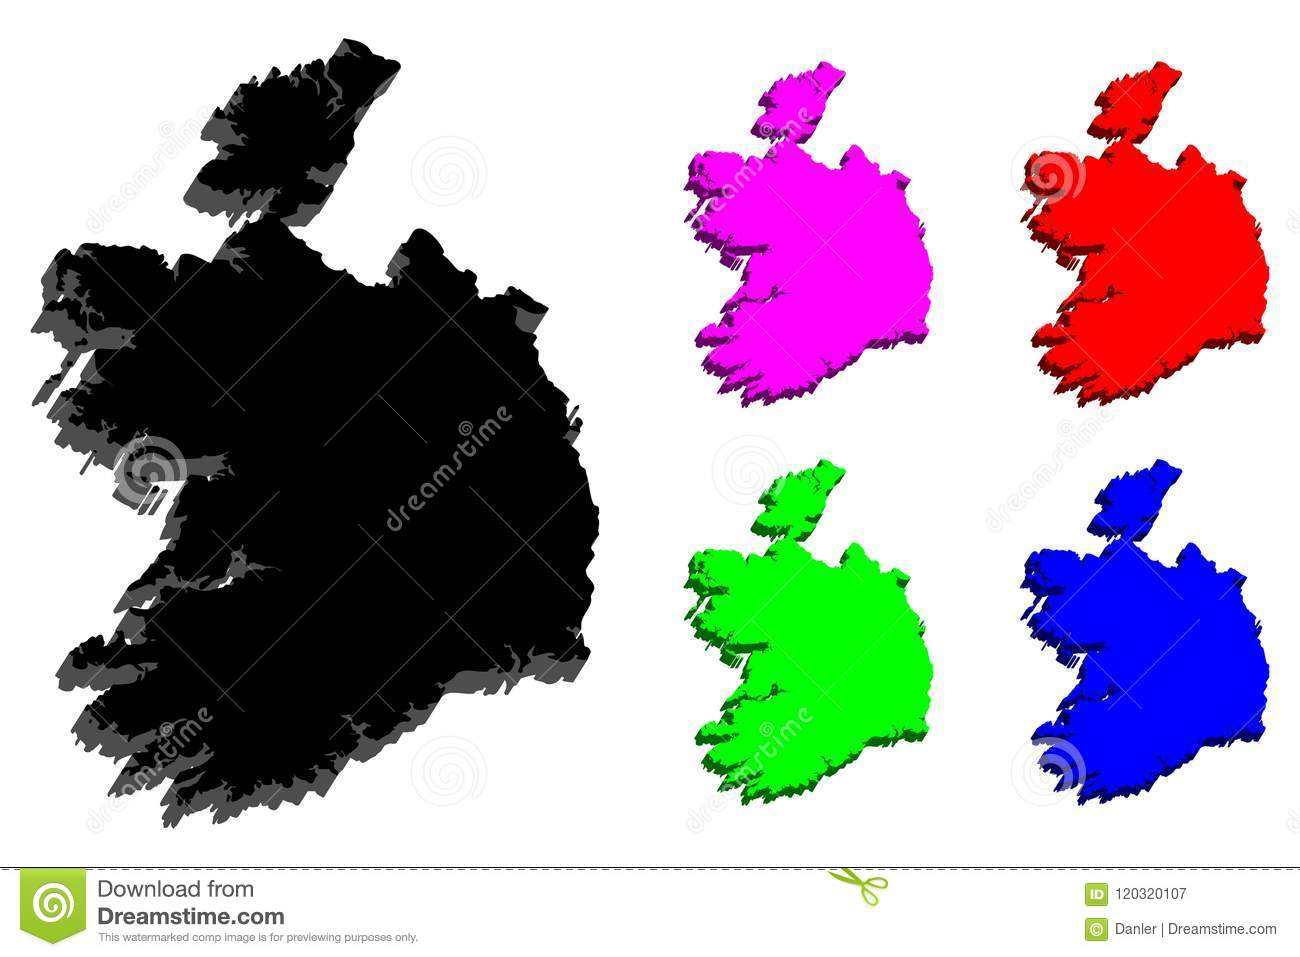 Map Of Ireland Vector.3d Map Of Ireland Stock Vector Illustration Of Patriotic 120320107